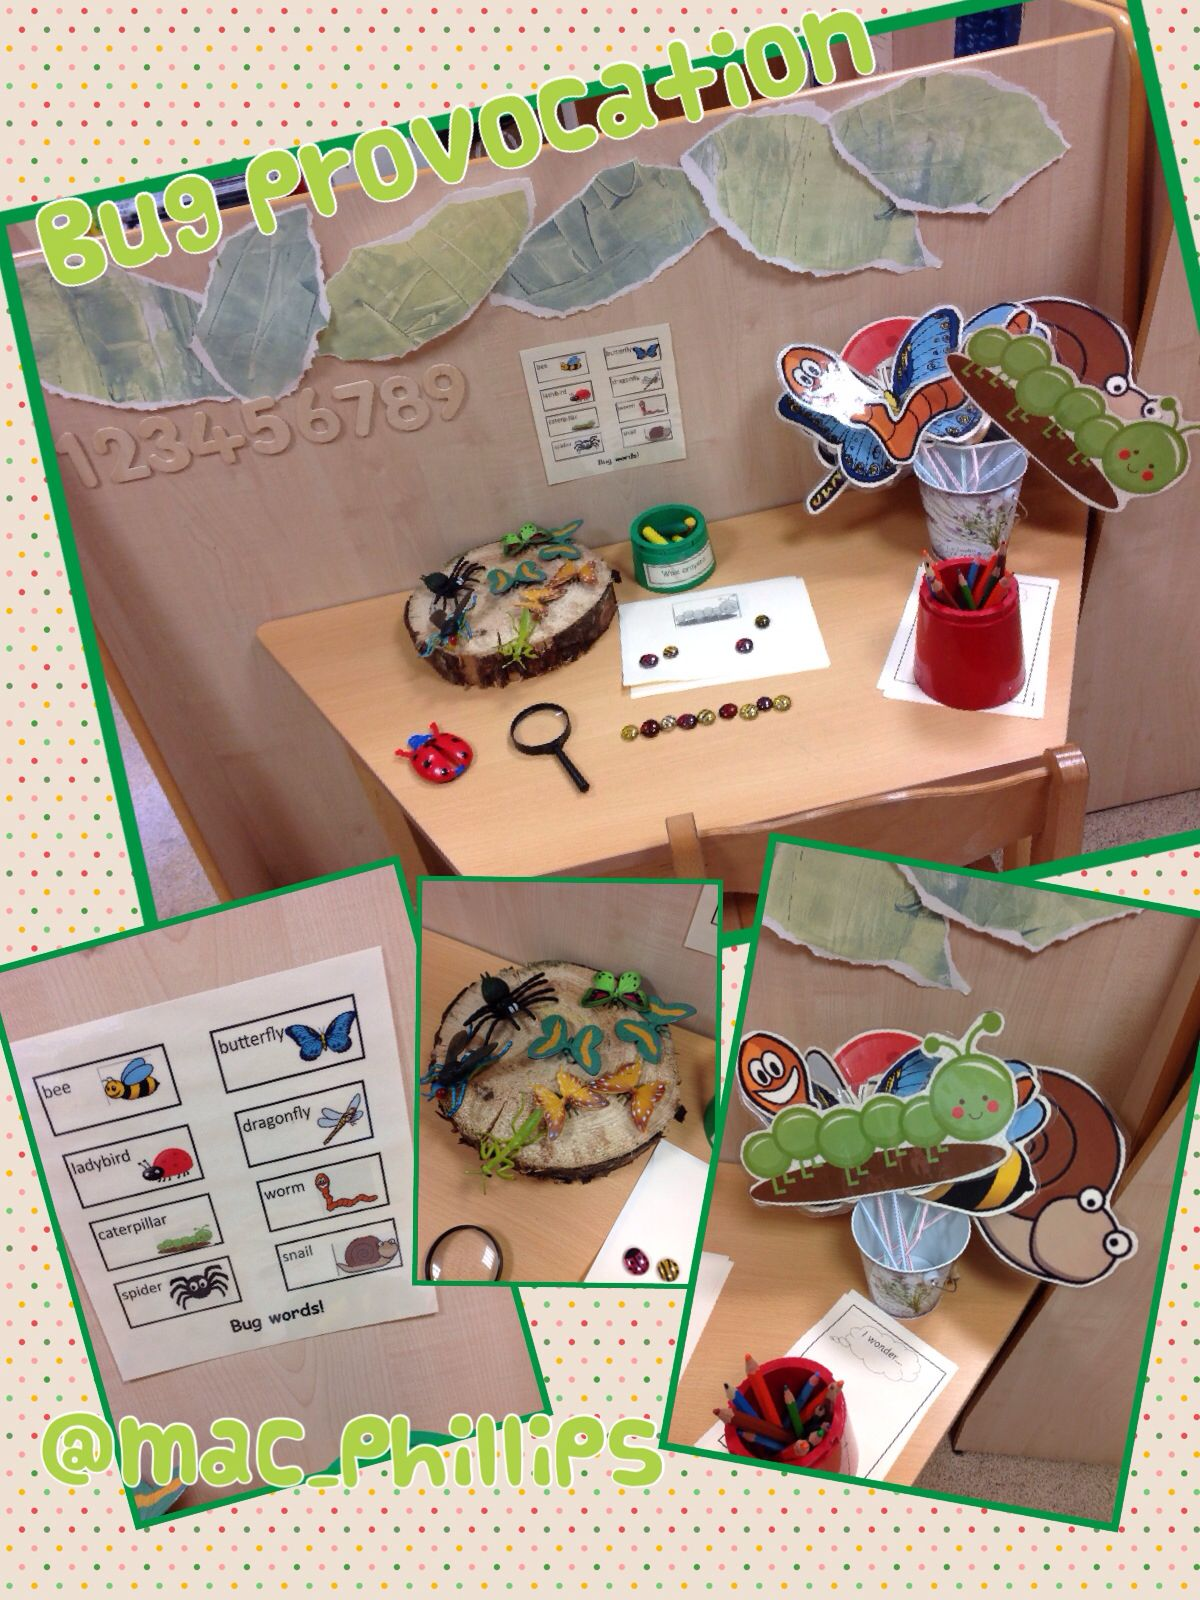 Bug Investigation Area Complete With Ladybirds And Bees